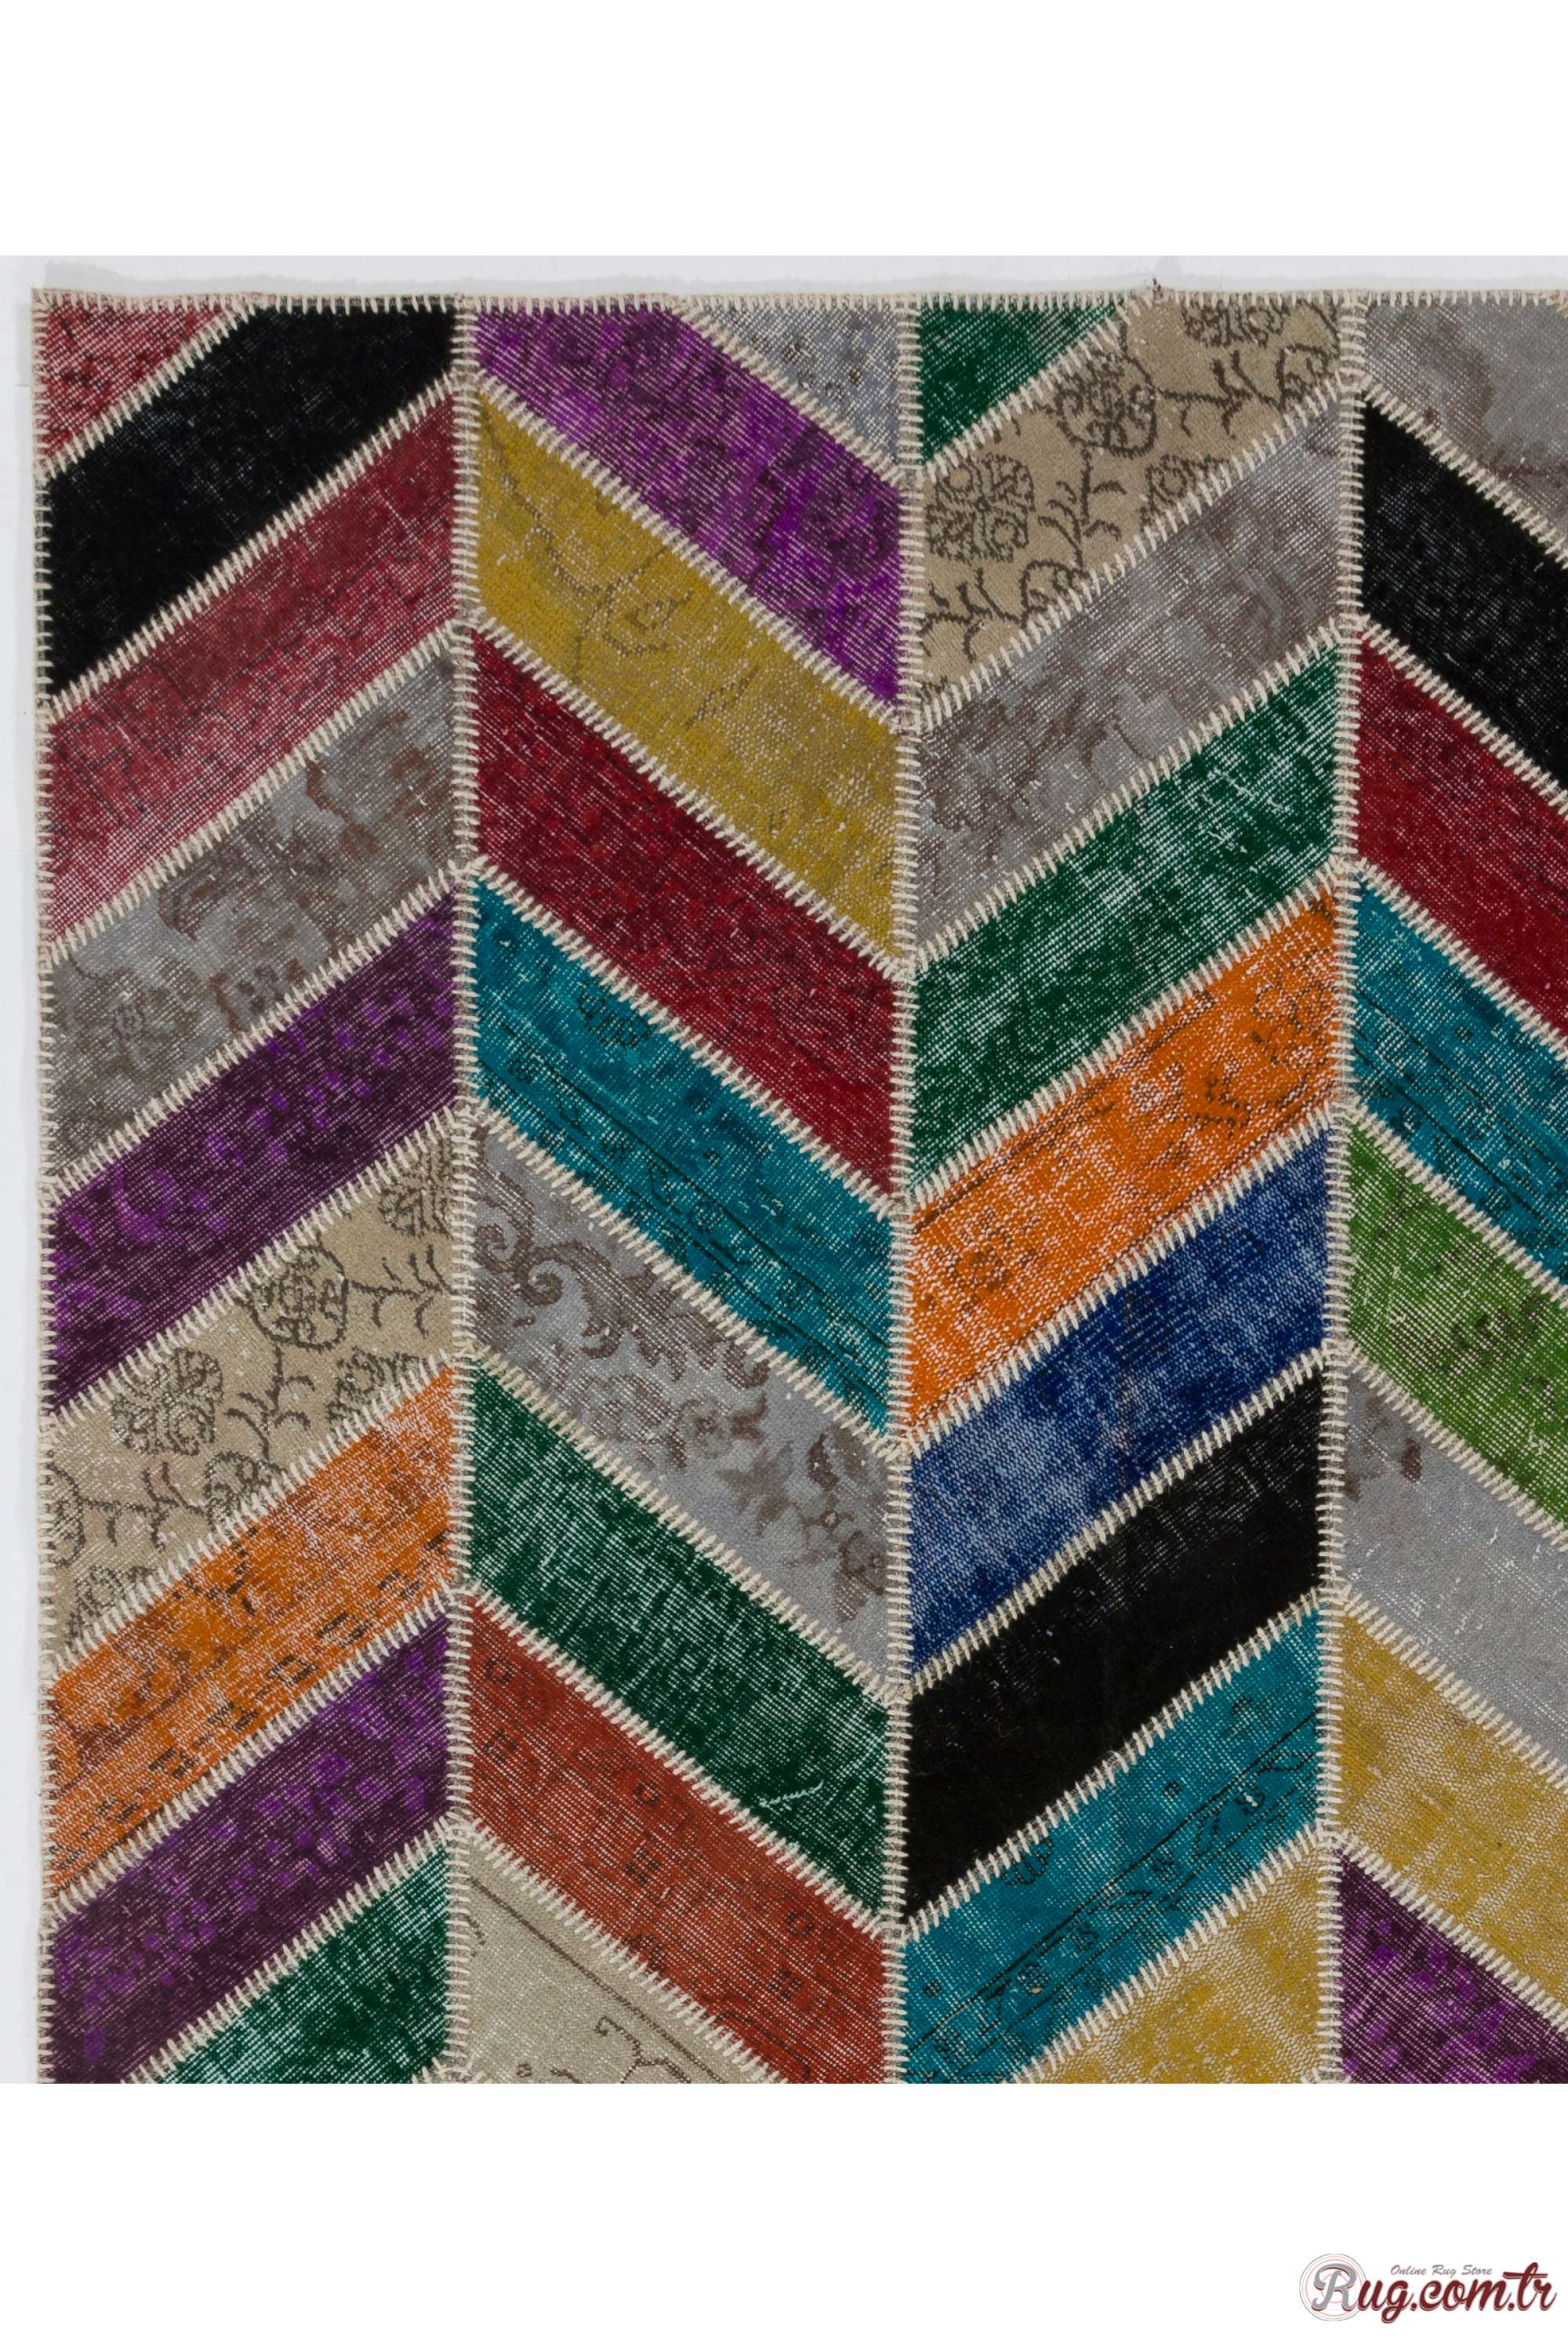 183x245 Cm 6x8 Ft Multicolor Patchwork Rug Chevron